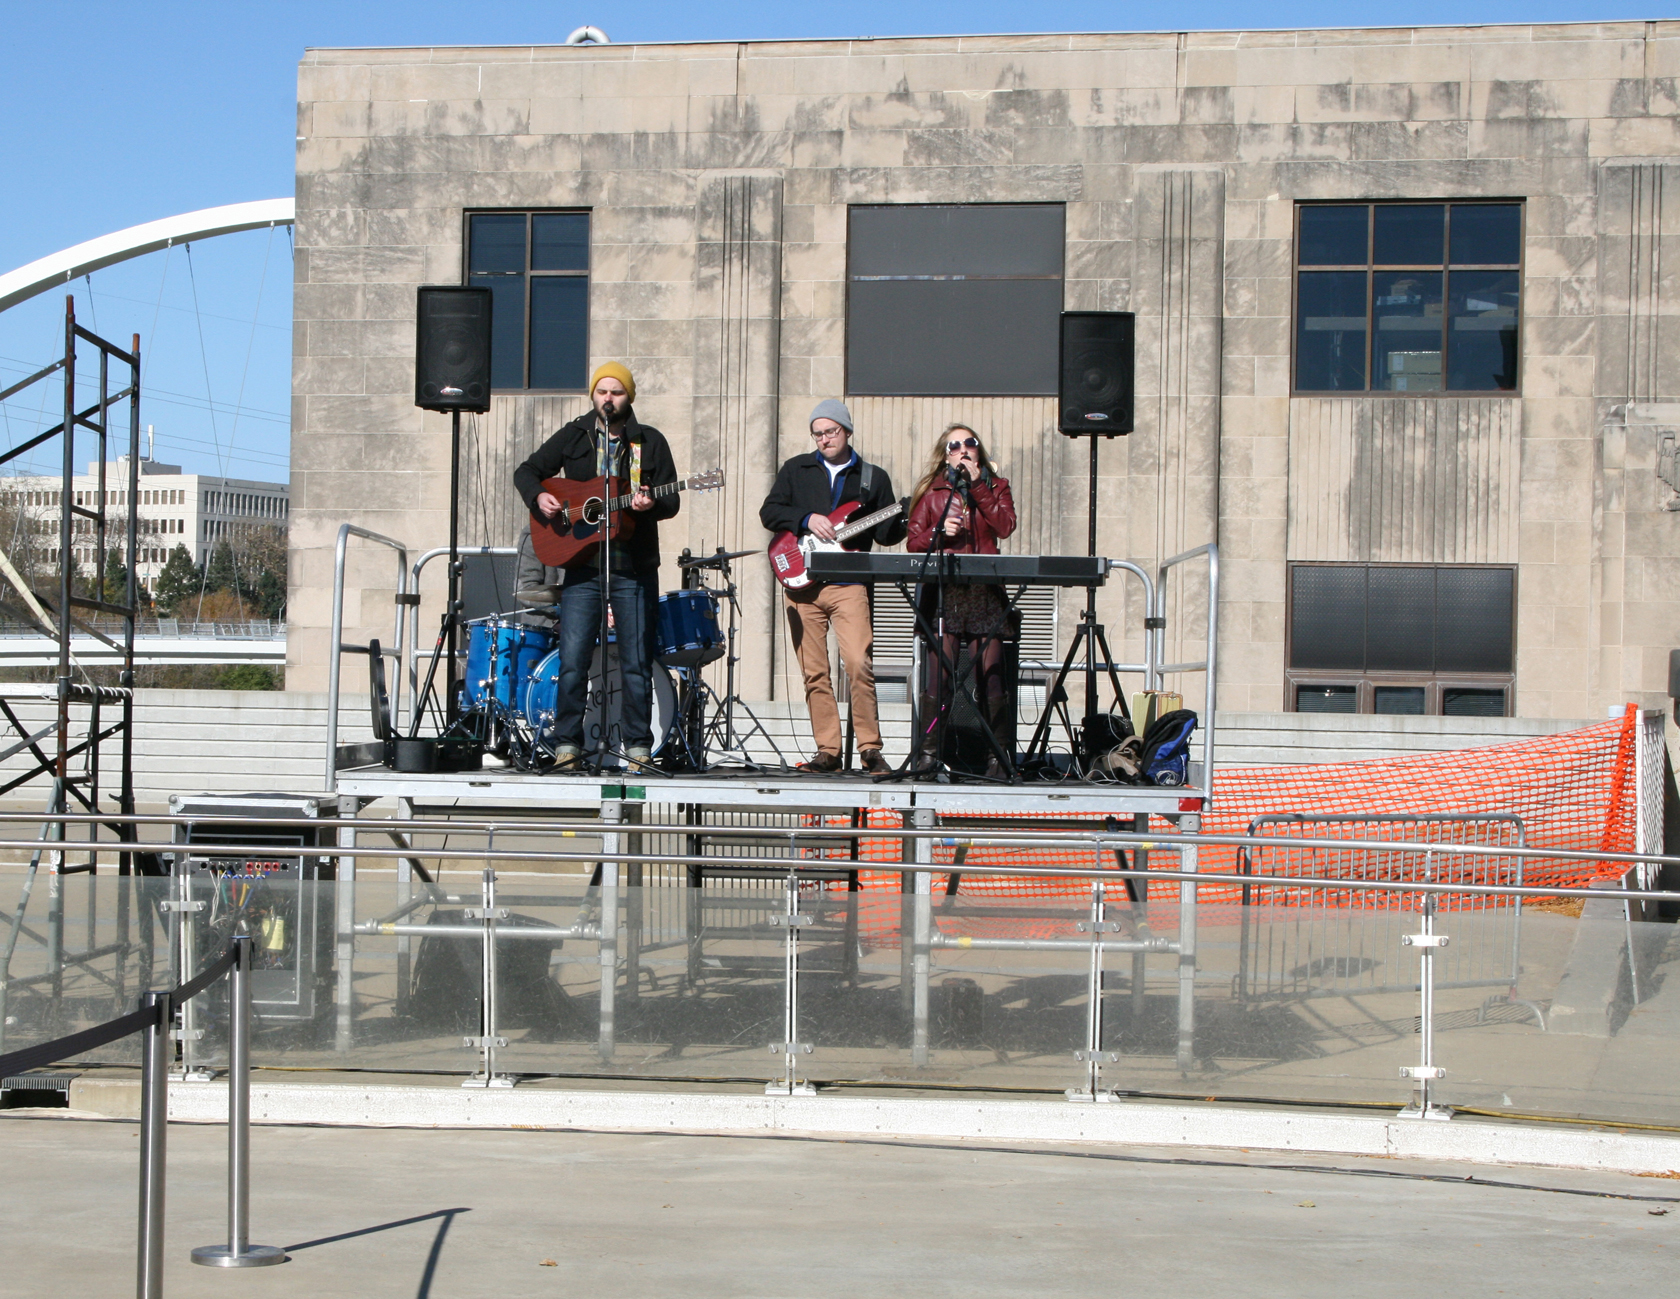 The Host Country band plays on our elevated band stage.